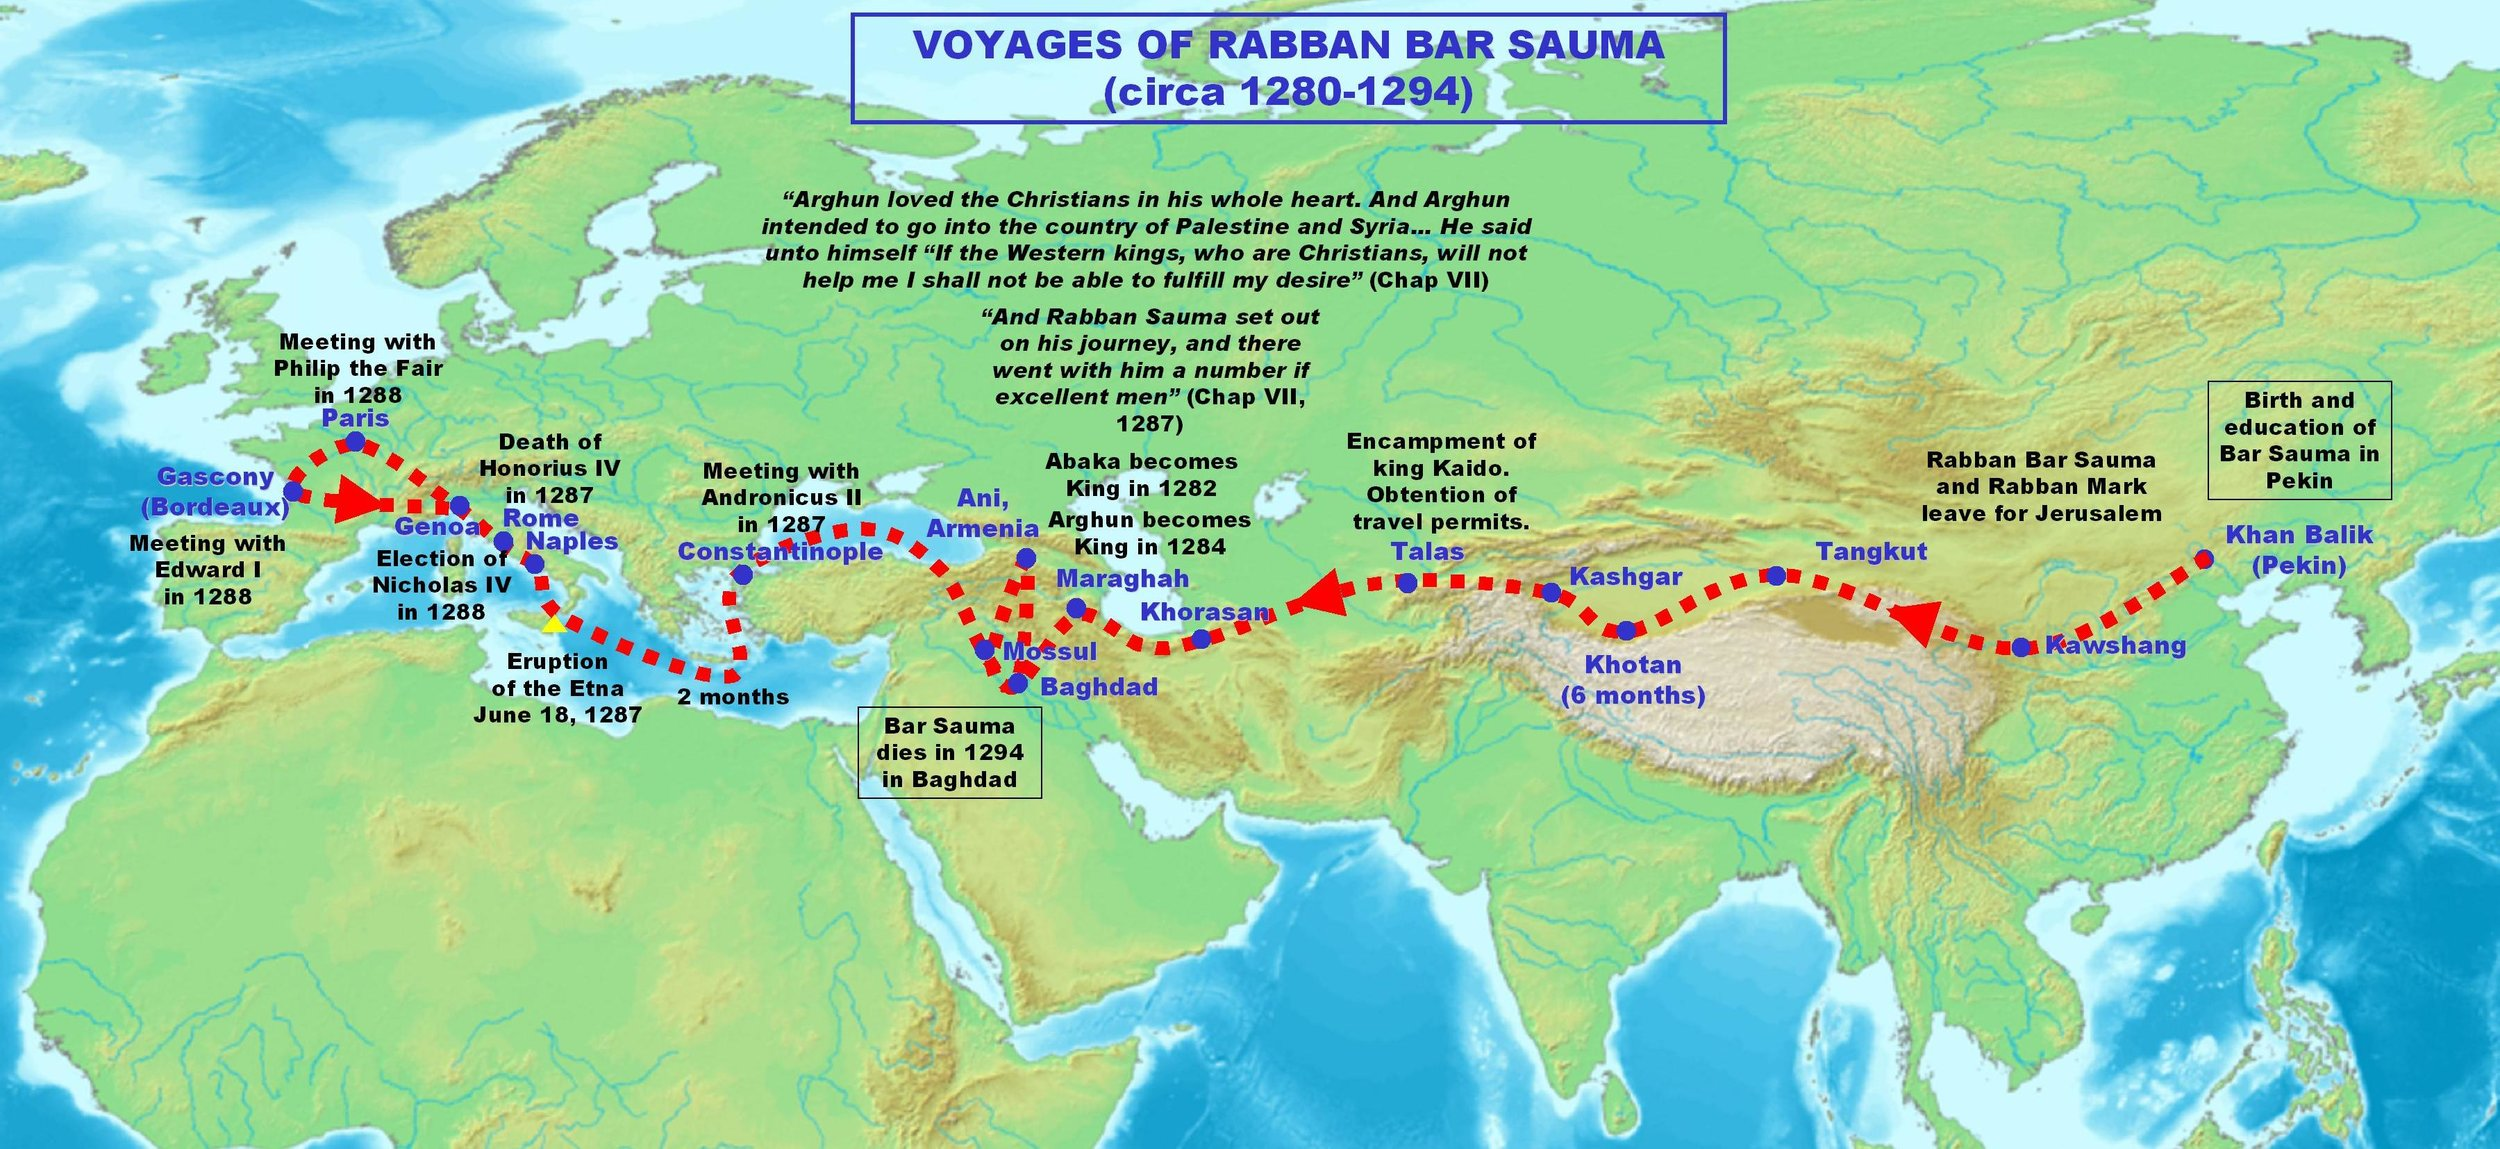 The Journey of Rabban Bar Sauma